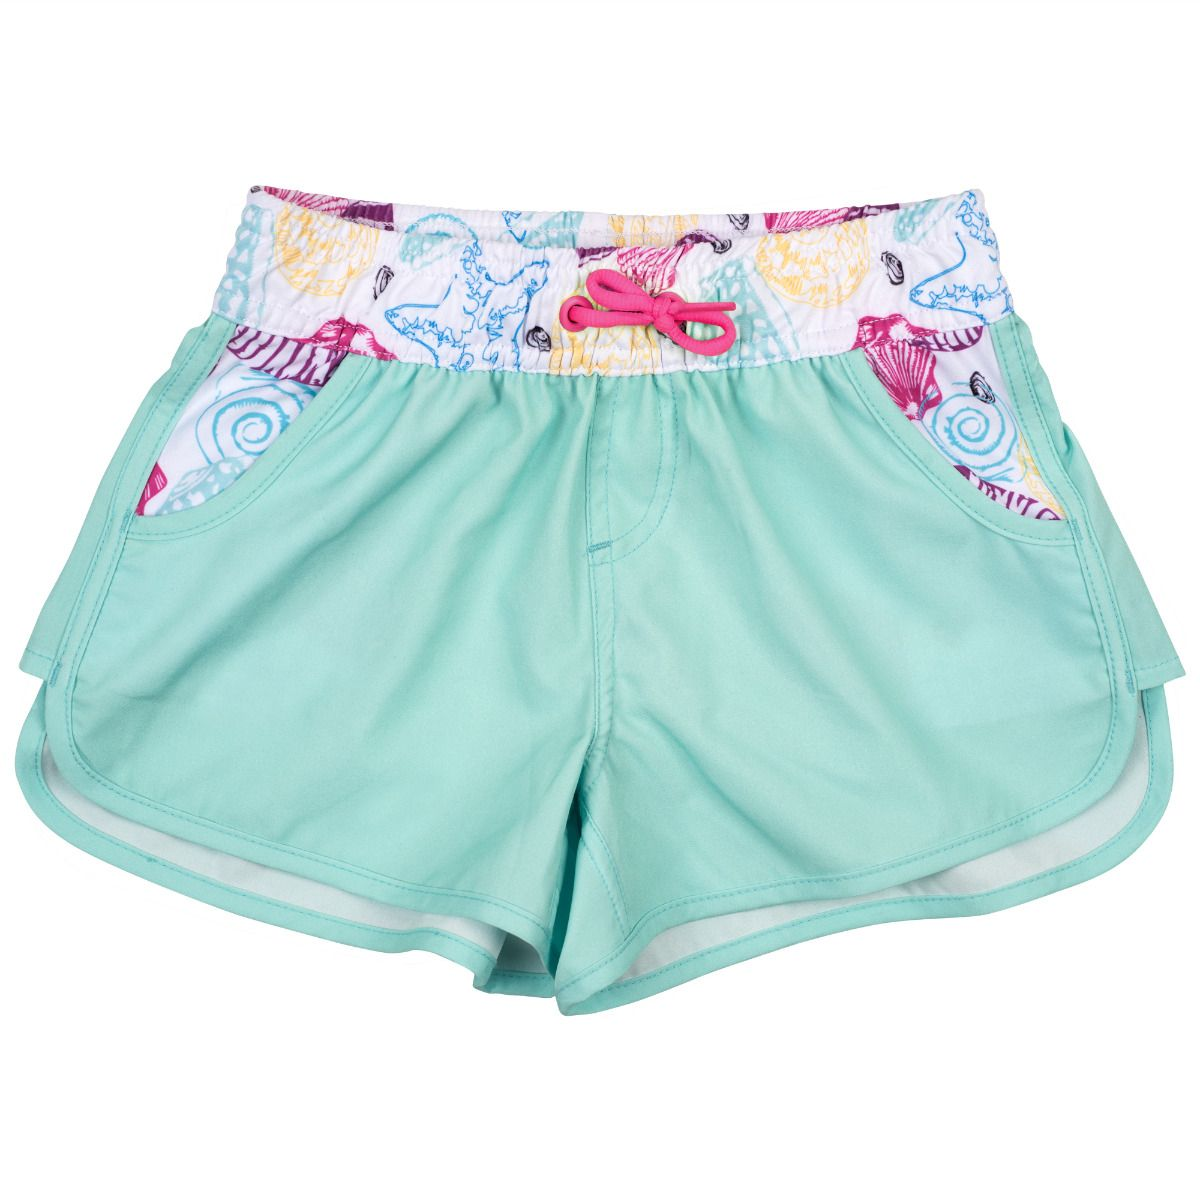 33c04948bd Girls' Swim Shorts in Mint. Tap to expand